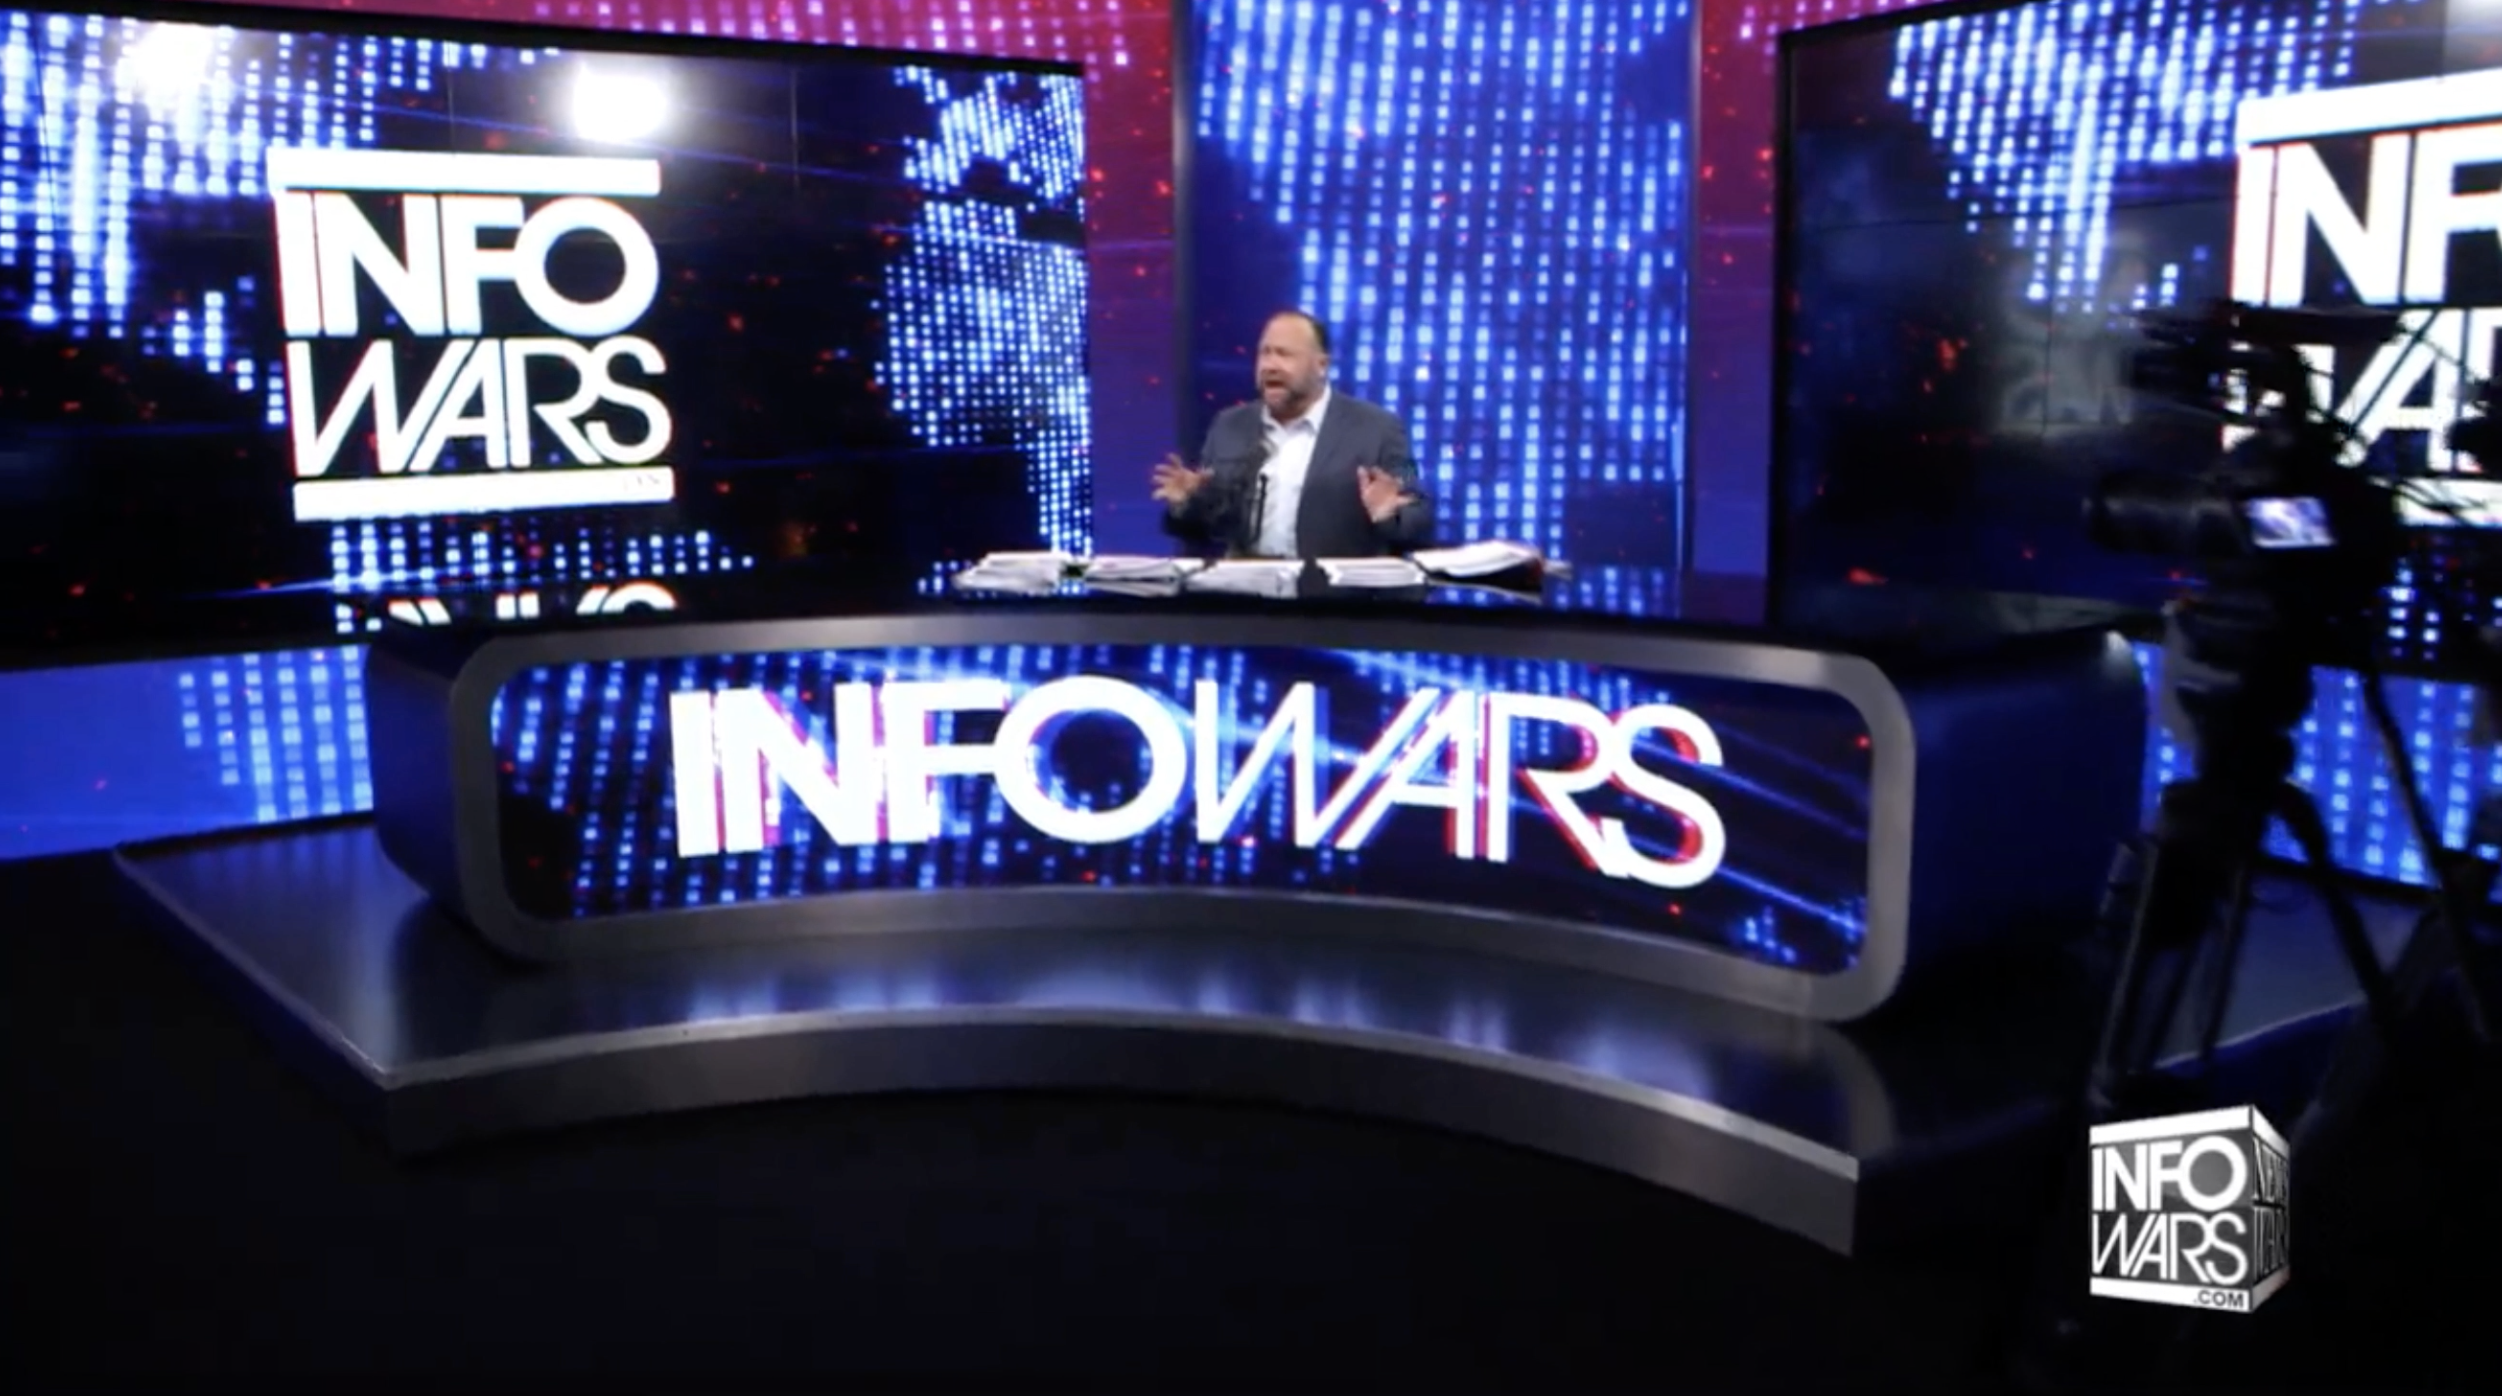 Alex Jones Infowars 3 2 2020